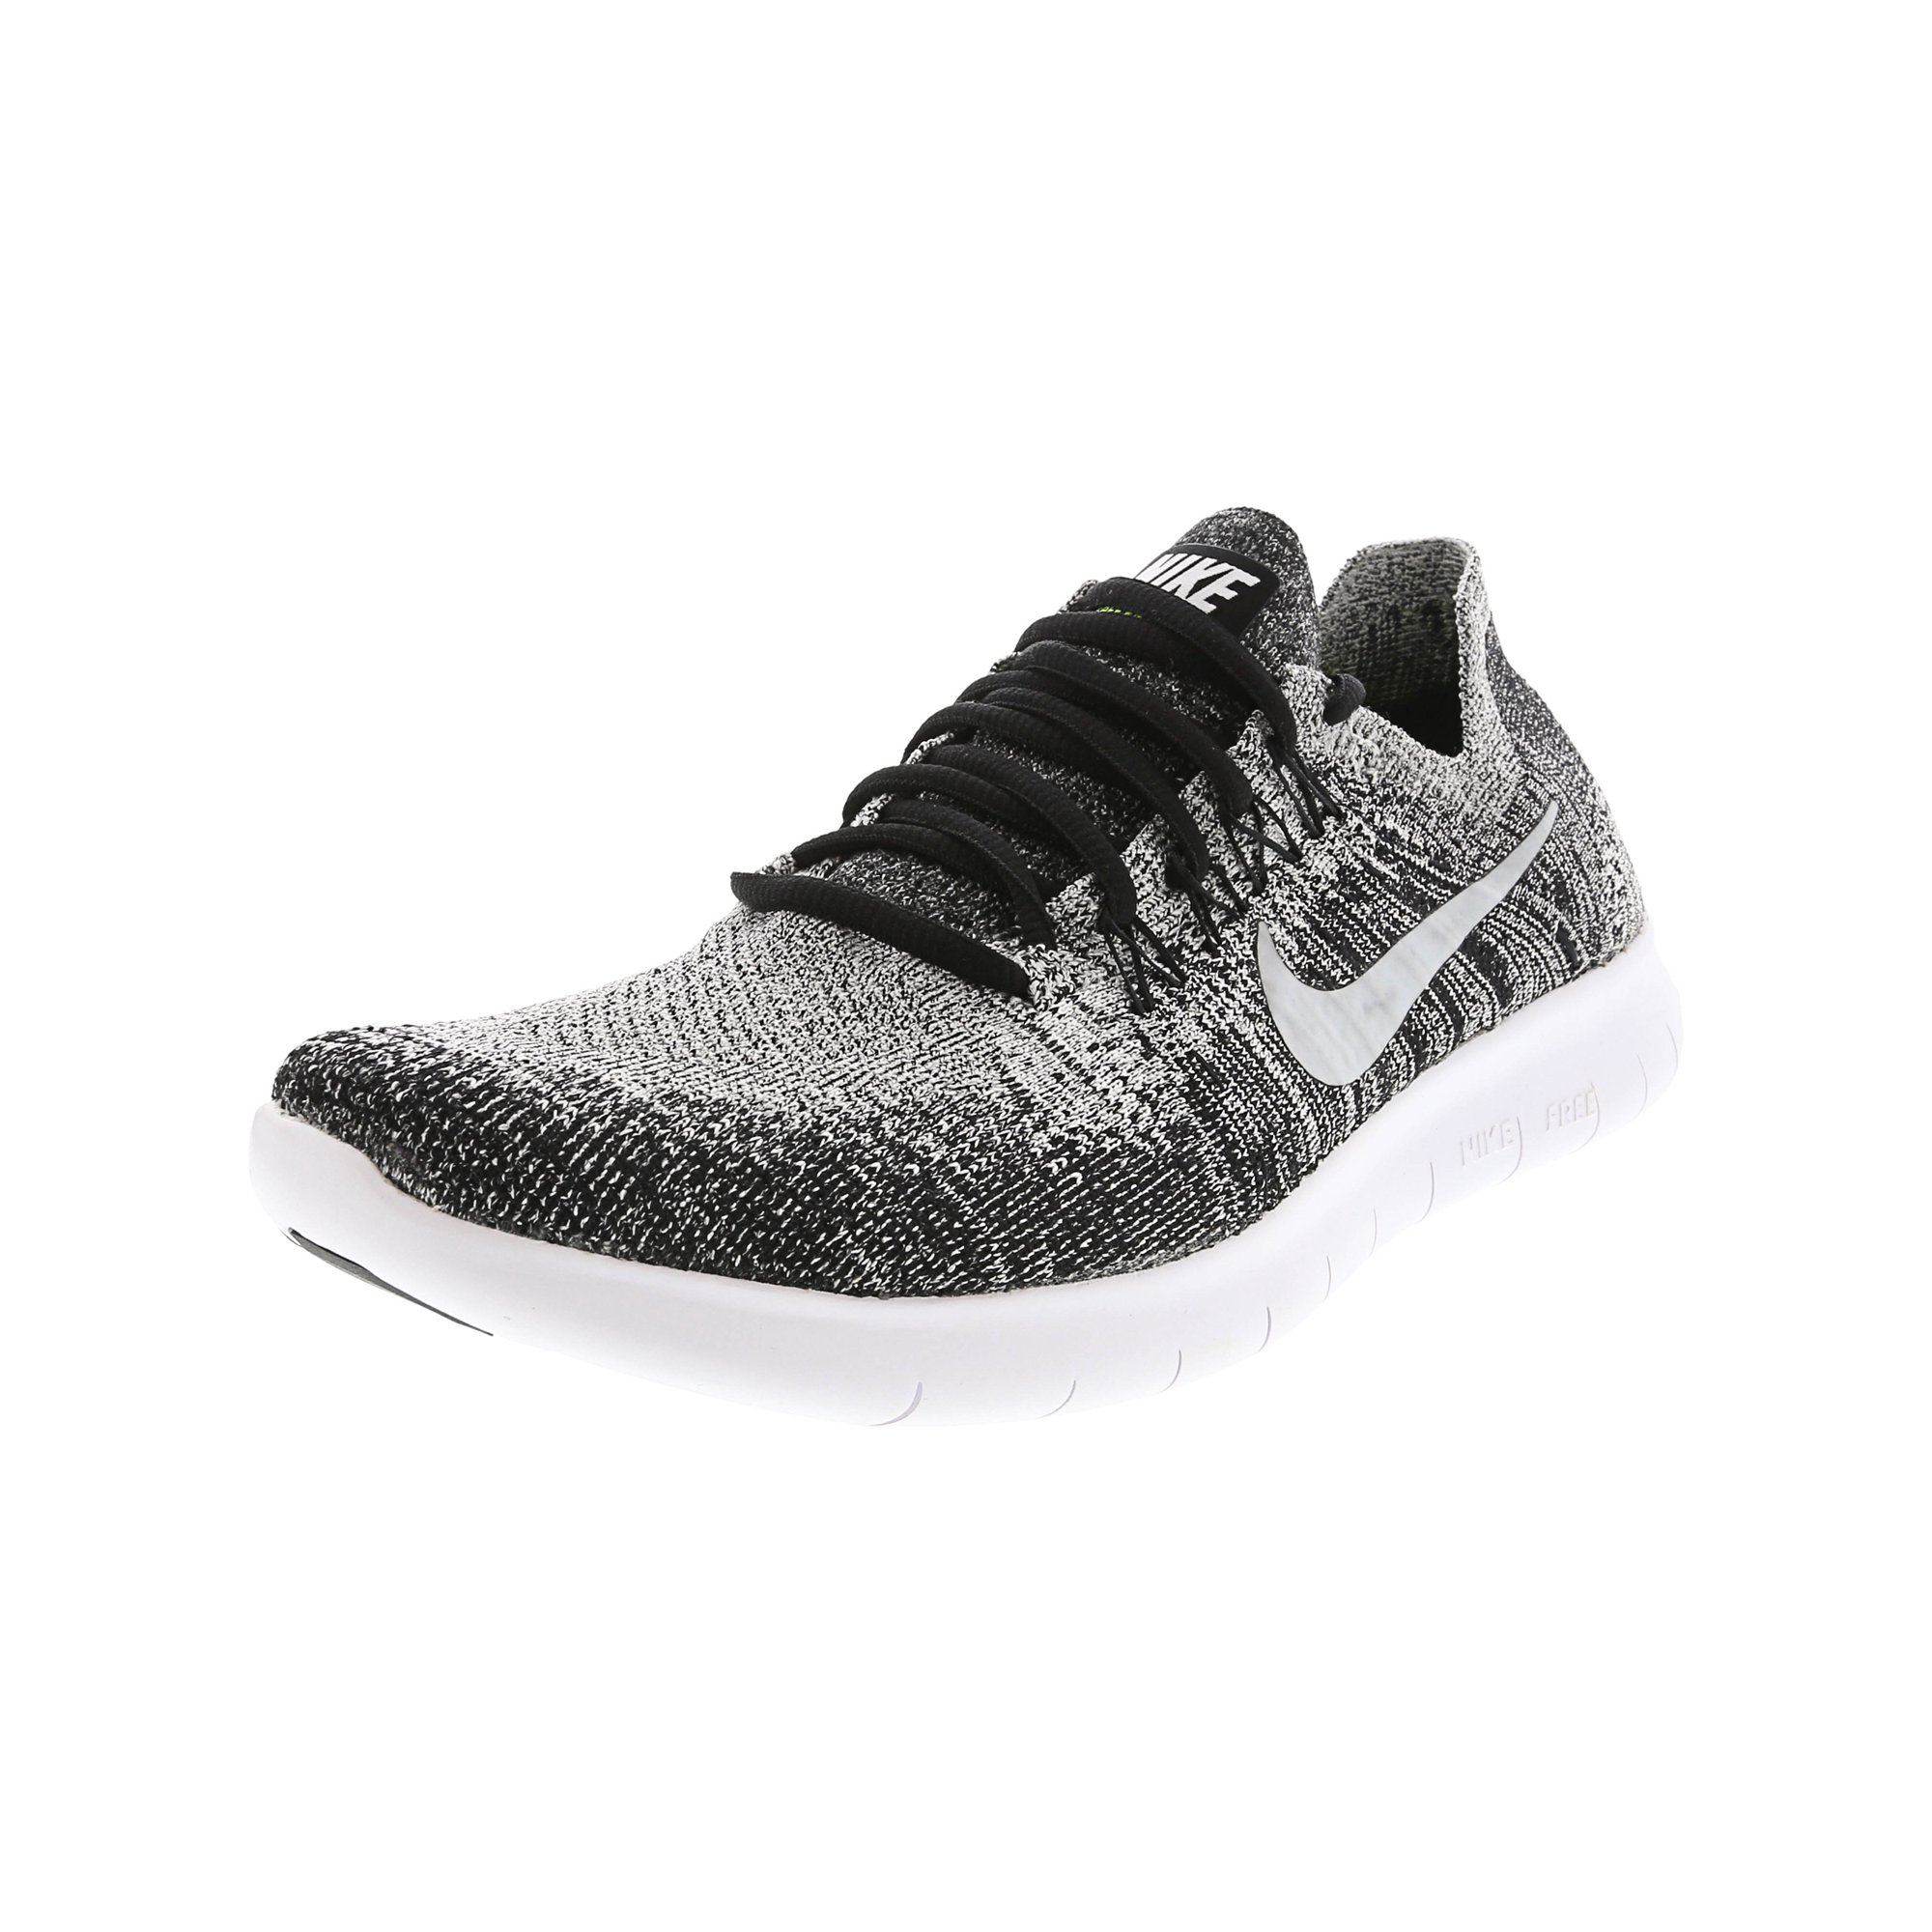 Running shoes Nike WMNS FREE RN FLYKNIT 2017